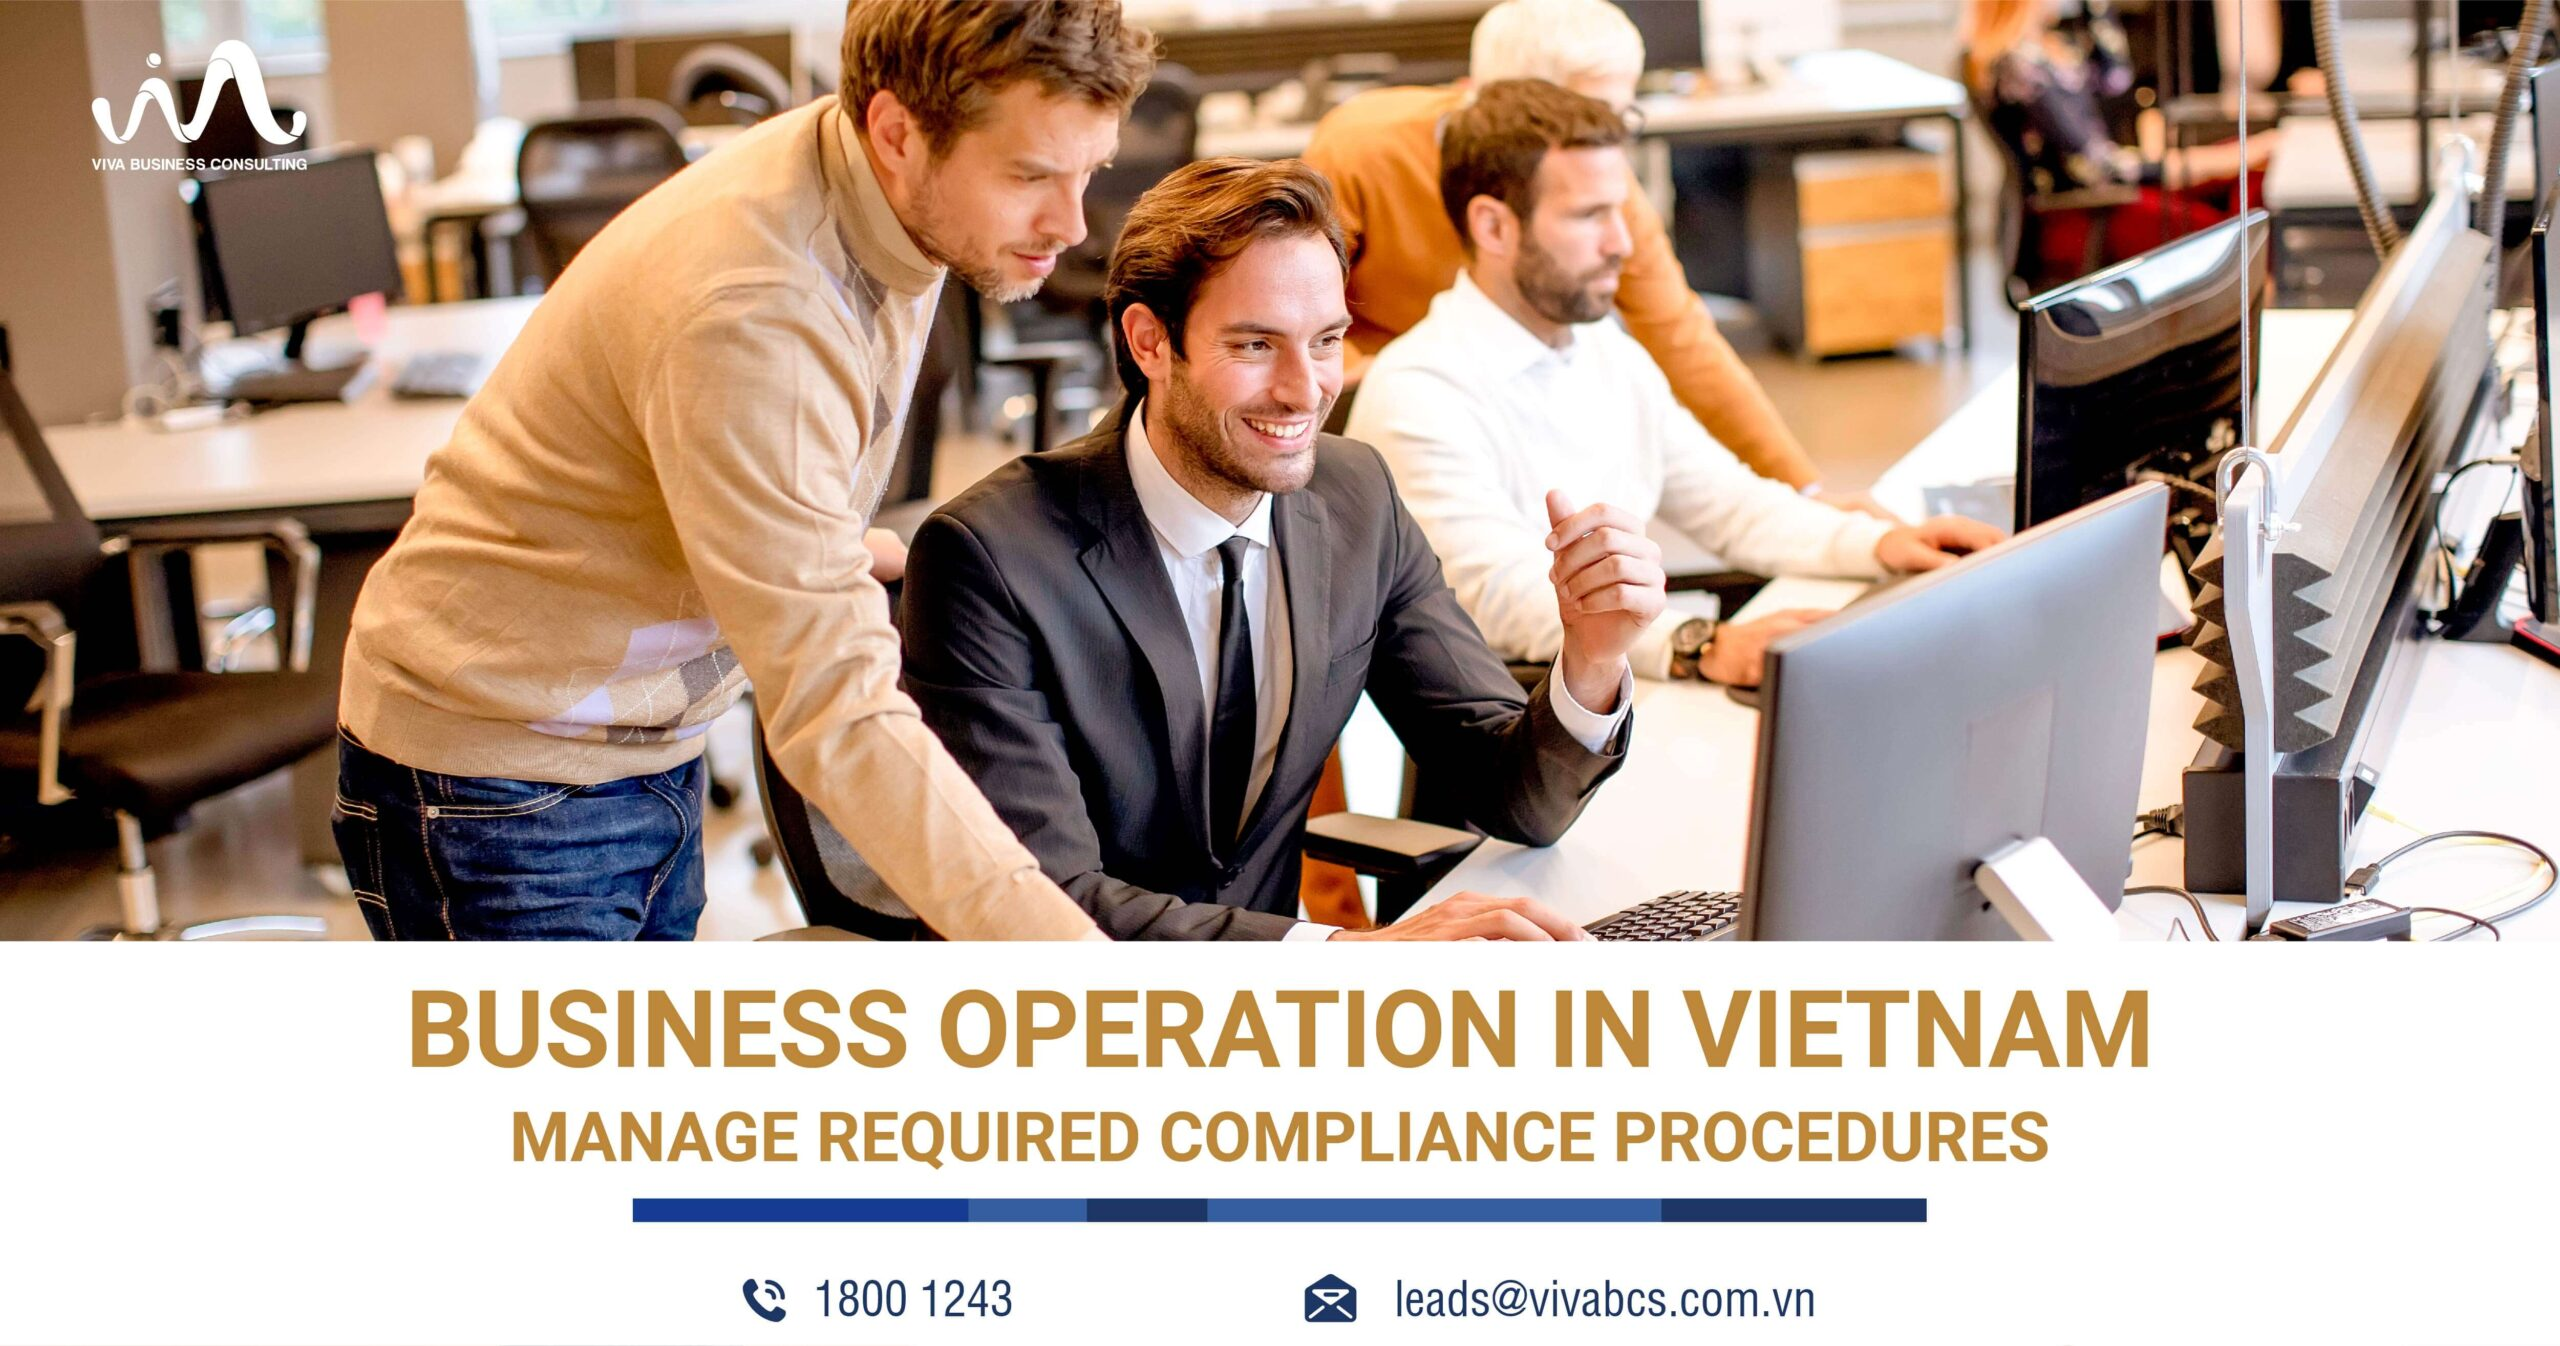 Business operation in VN: The mandatory compliance procedures